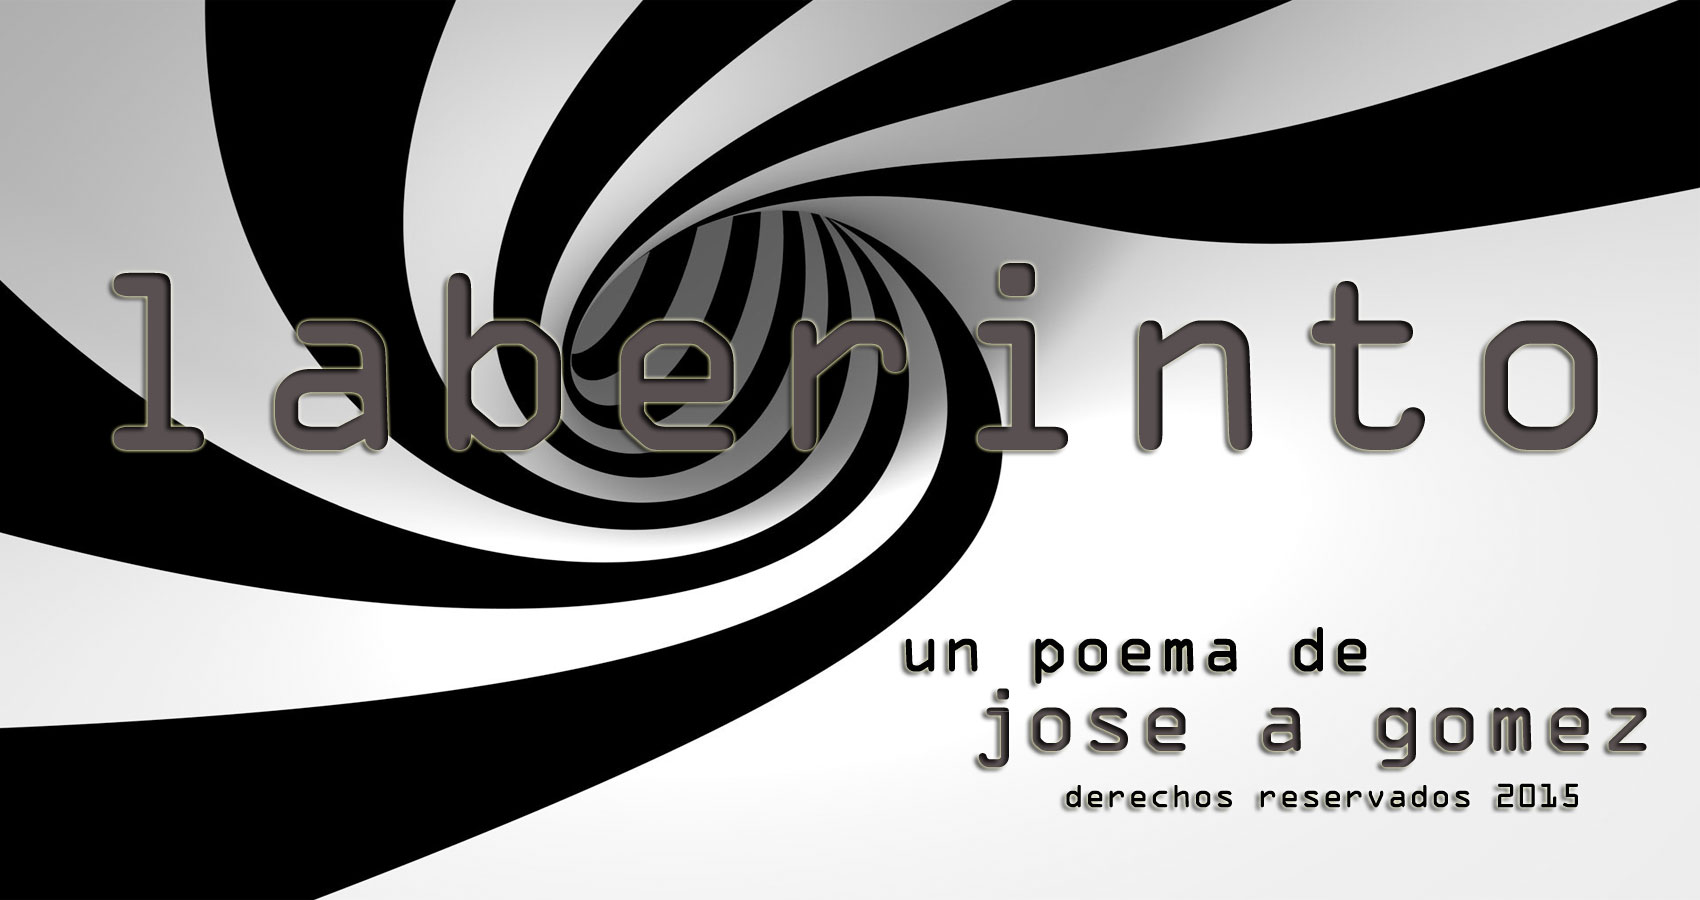 Laberinto at Spillwords.com by Jose A Gomez